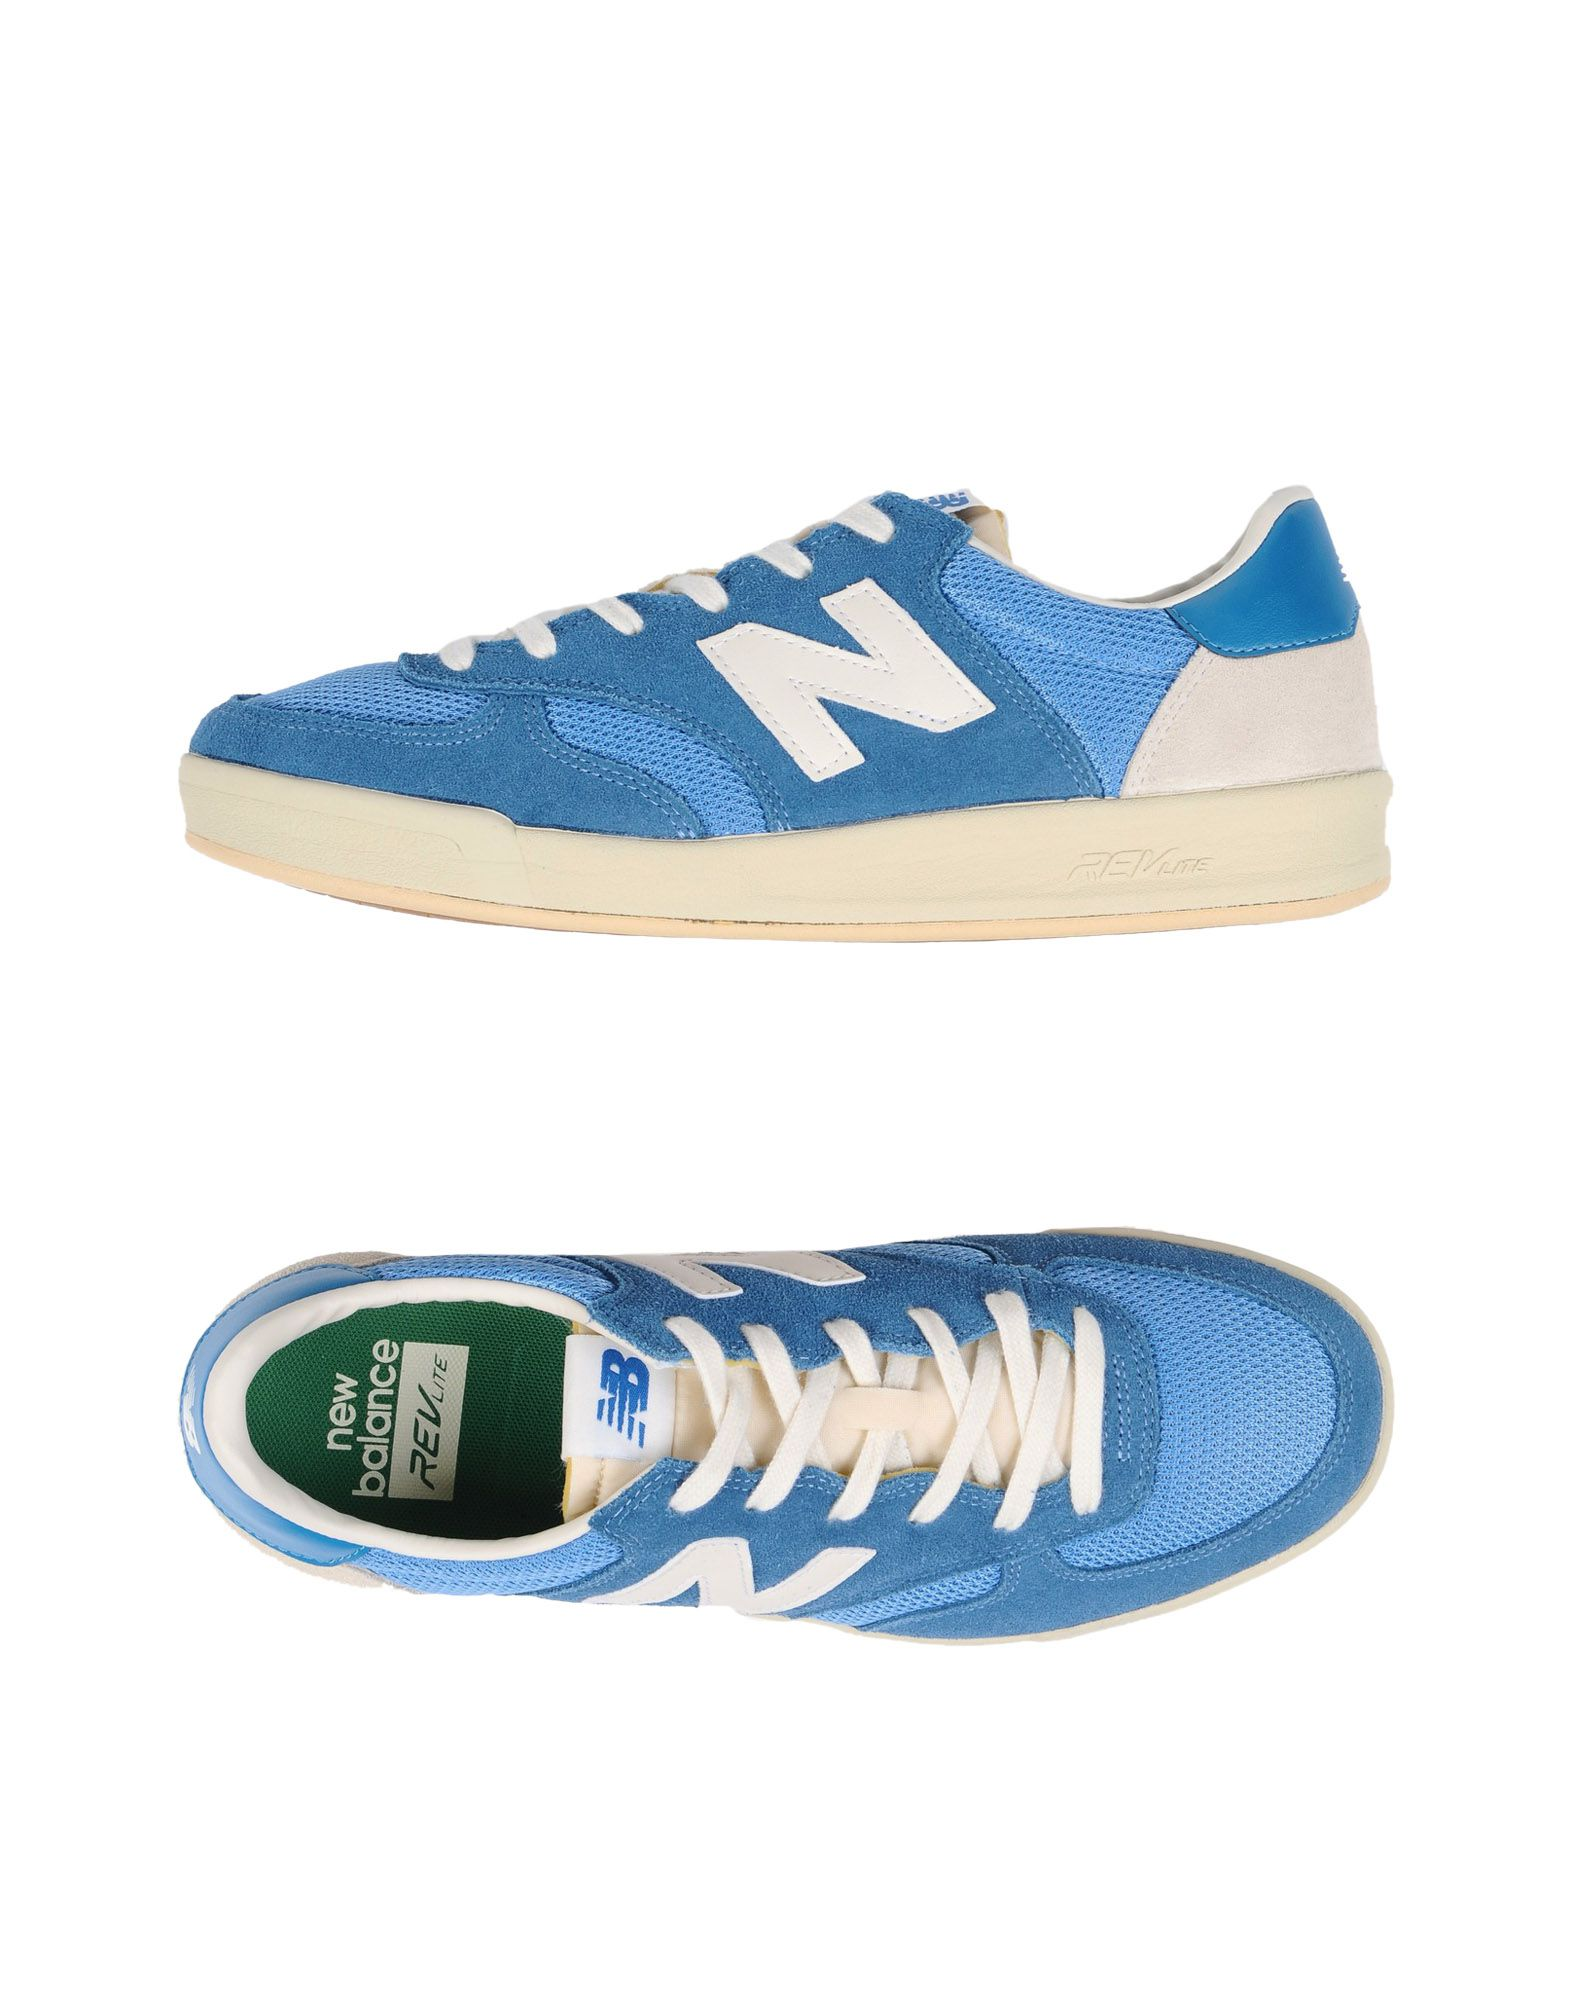 Sneakers New Balance 300 Suede - Mesh - Homme - Sneakers New Balance  Bleu-gris Chaussures casual sauvages